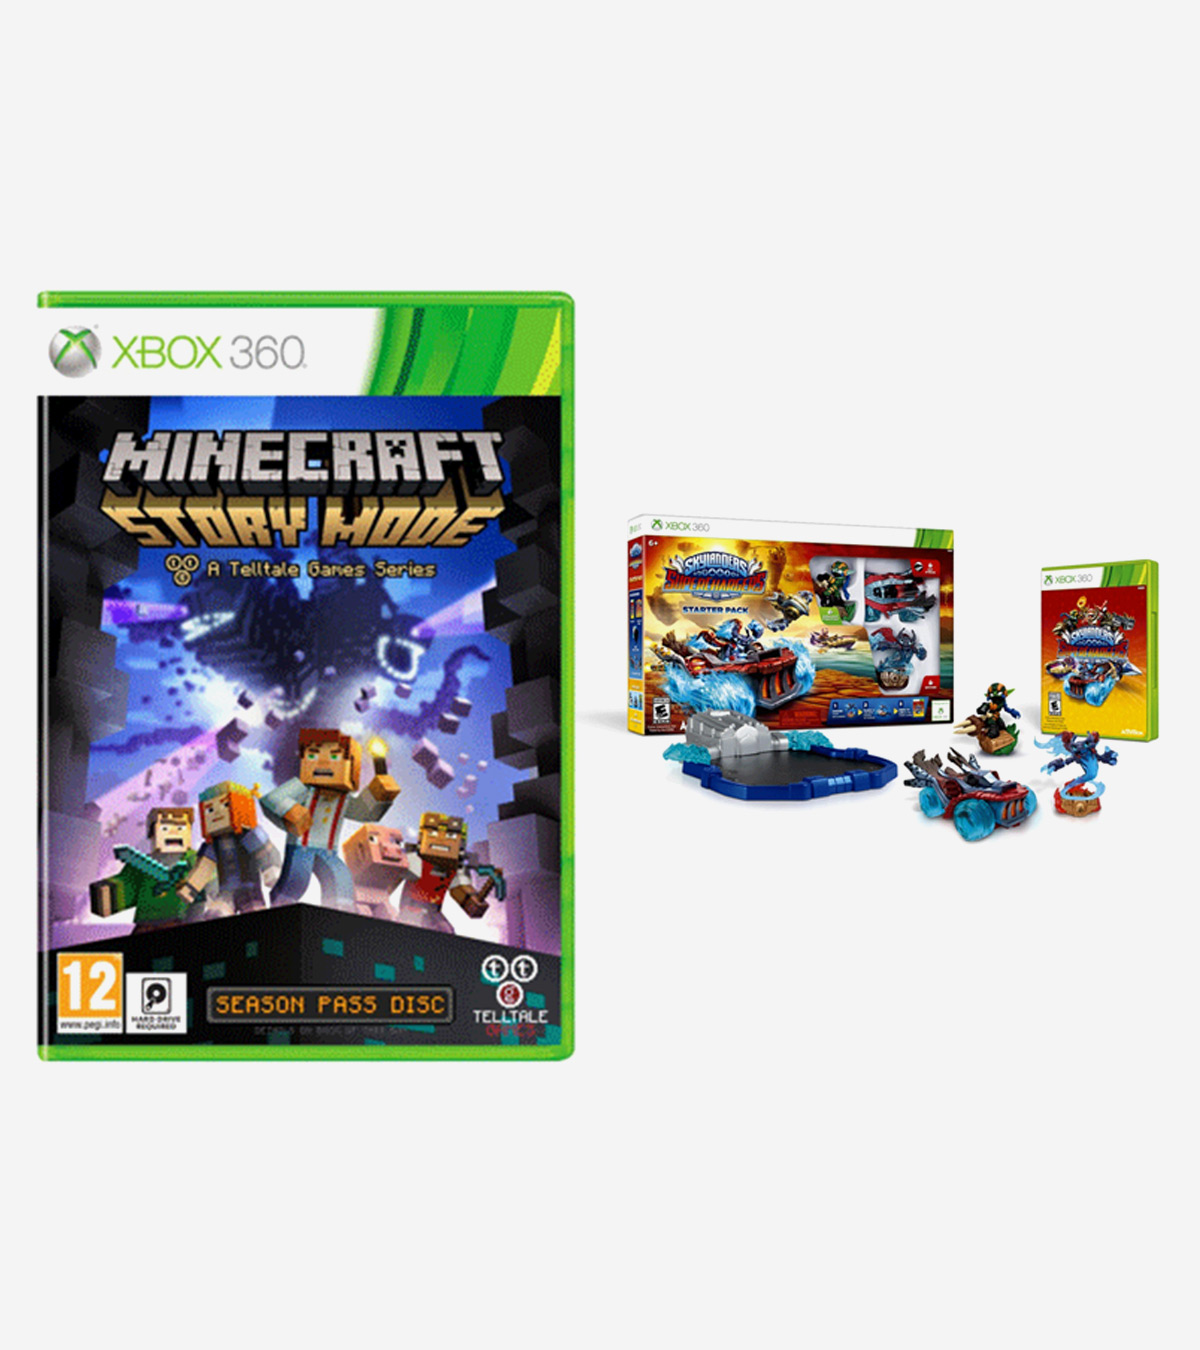 24 Best Xbox 360 Games For Kids Aged 3 to 12+